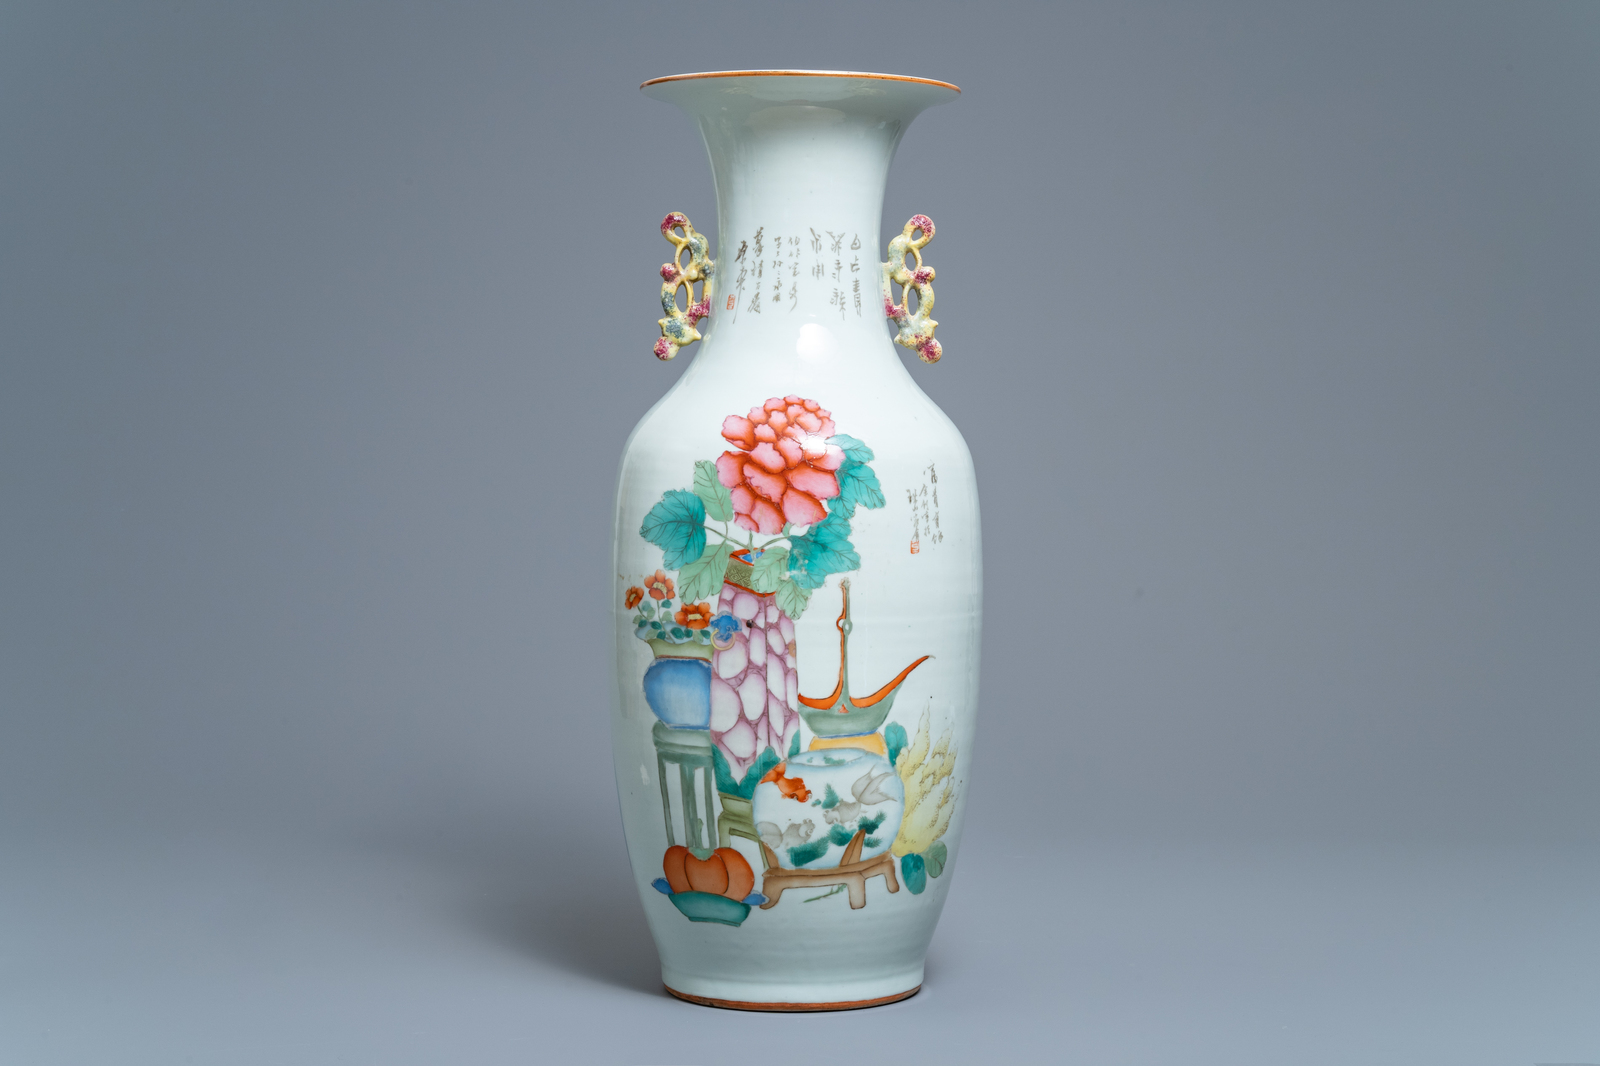 Lot 32 - A Chinese famille rose two-sided design vase, 19/20th C.